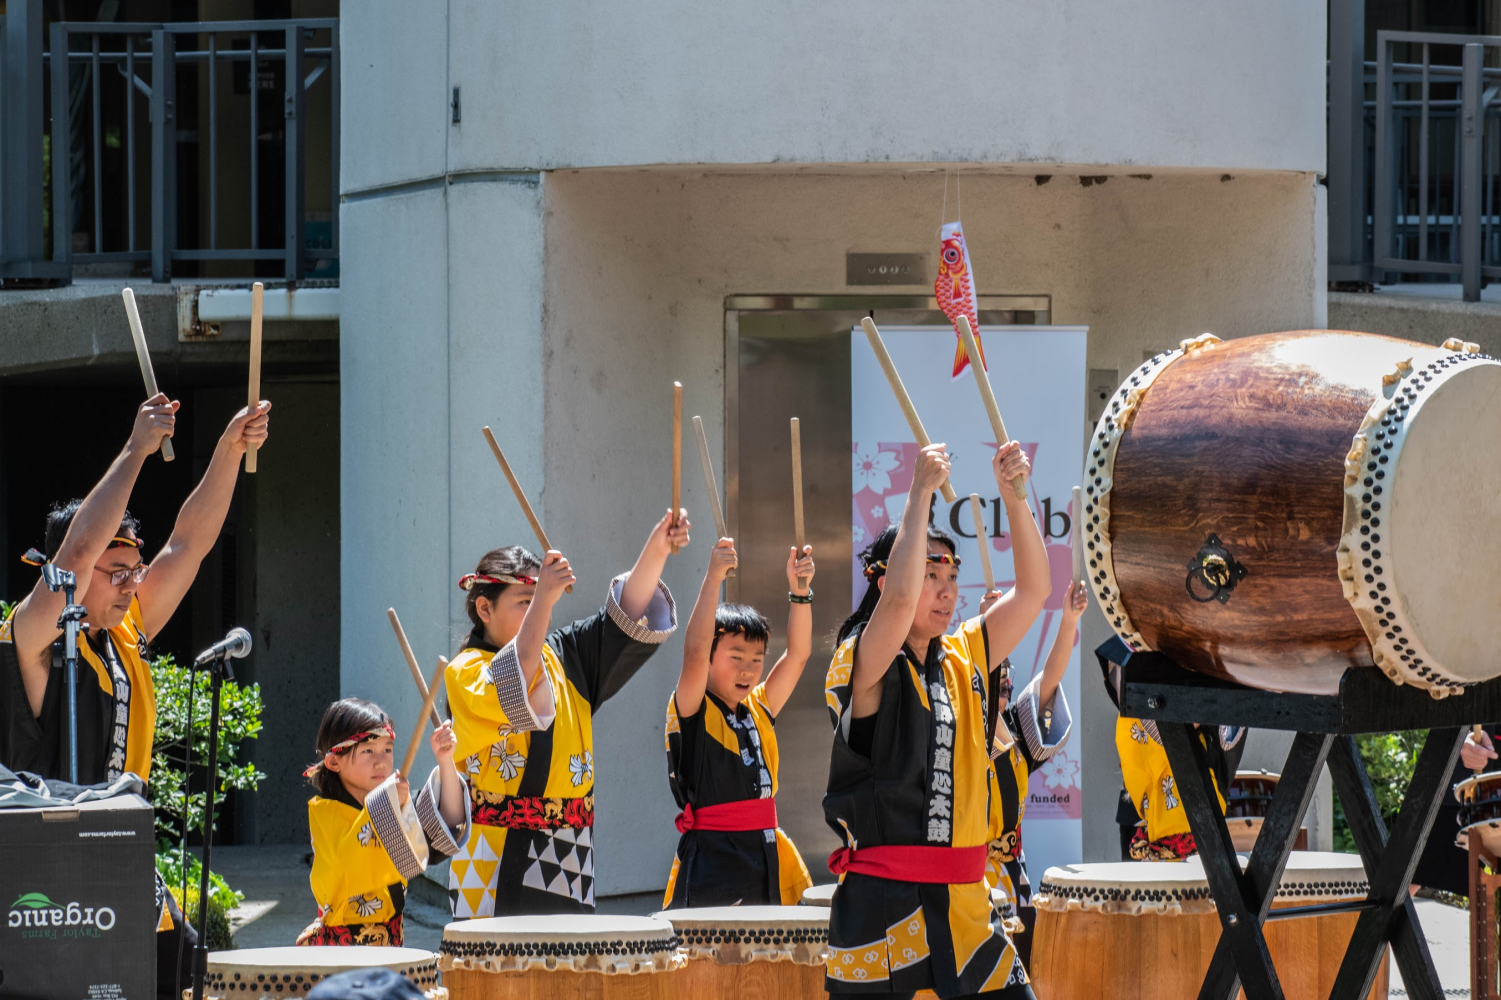 The Koyasan Spirit of Children Taiko Group strike taikos in unison during a performance for Sac State's Japan Day. Each taiko is unique and custom-made from sanded wine barrels.